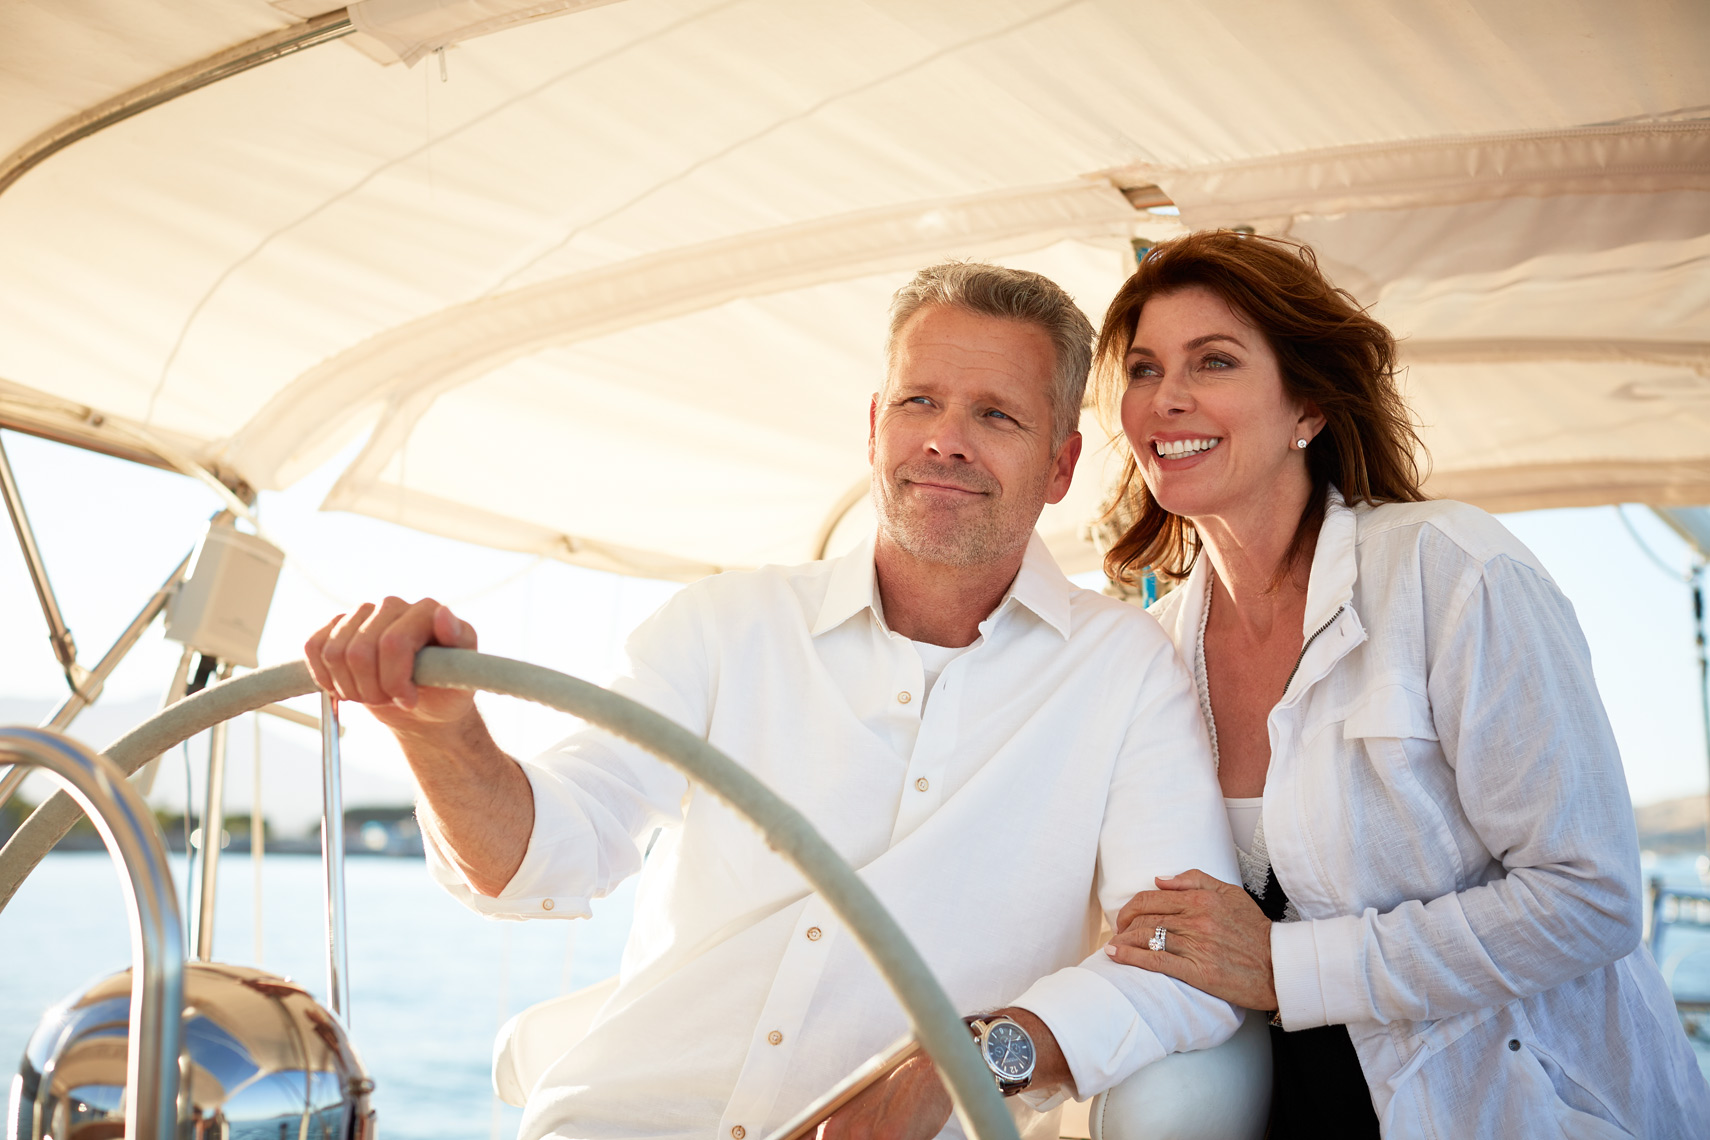 lifestyle photographer, advertising photographer,couple on the sailboat, husband and wife, wealthy people, ocean, sailing, san francisco, bay, summer